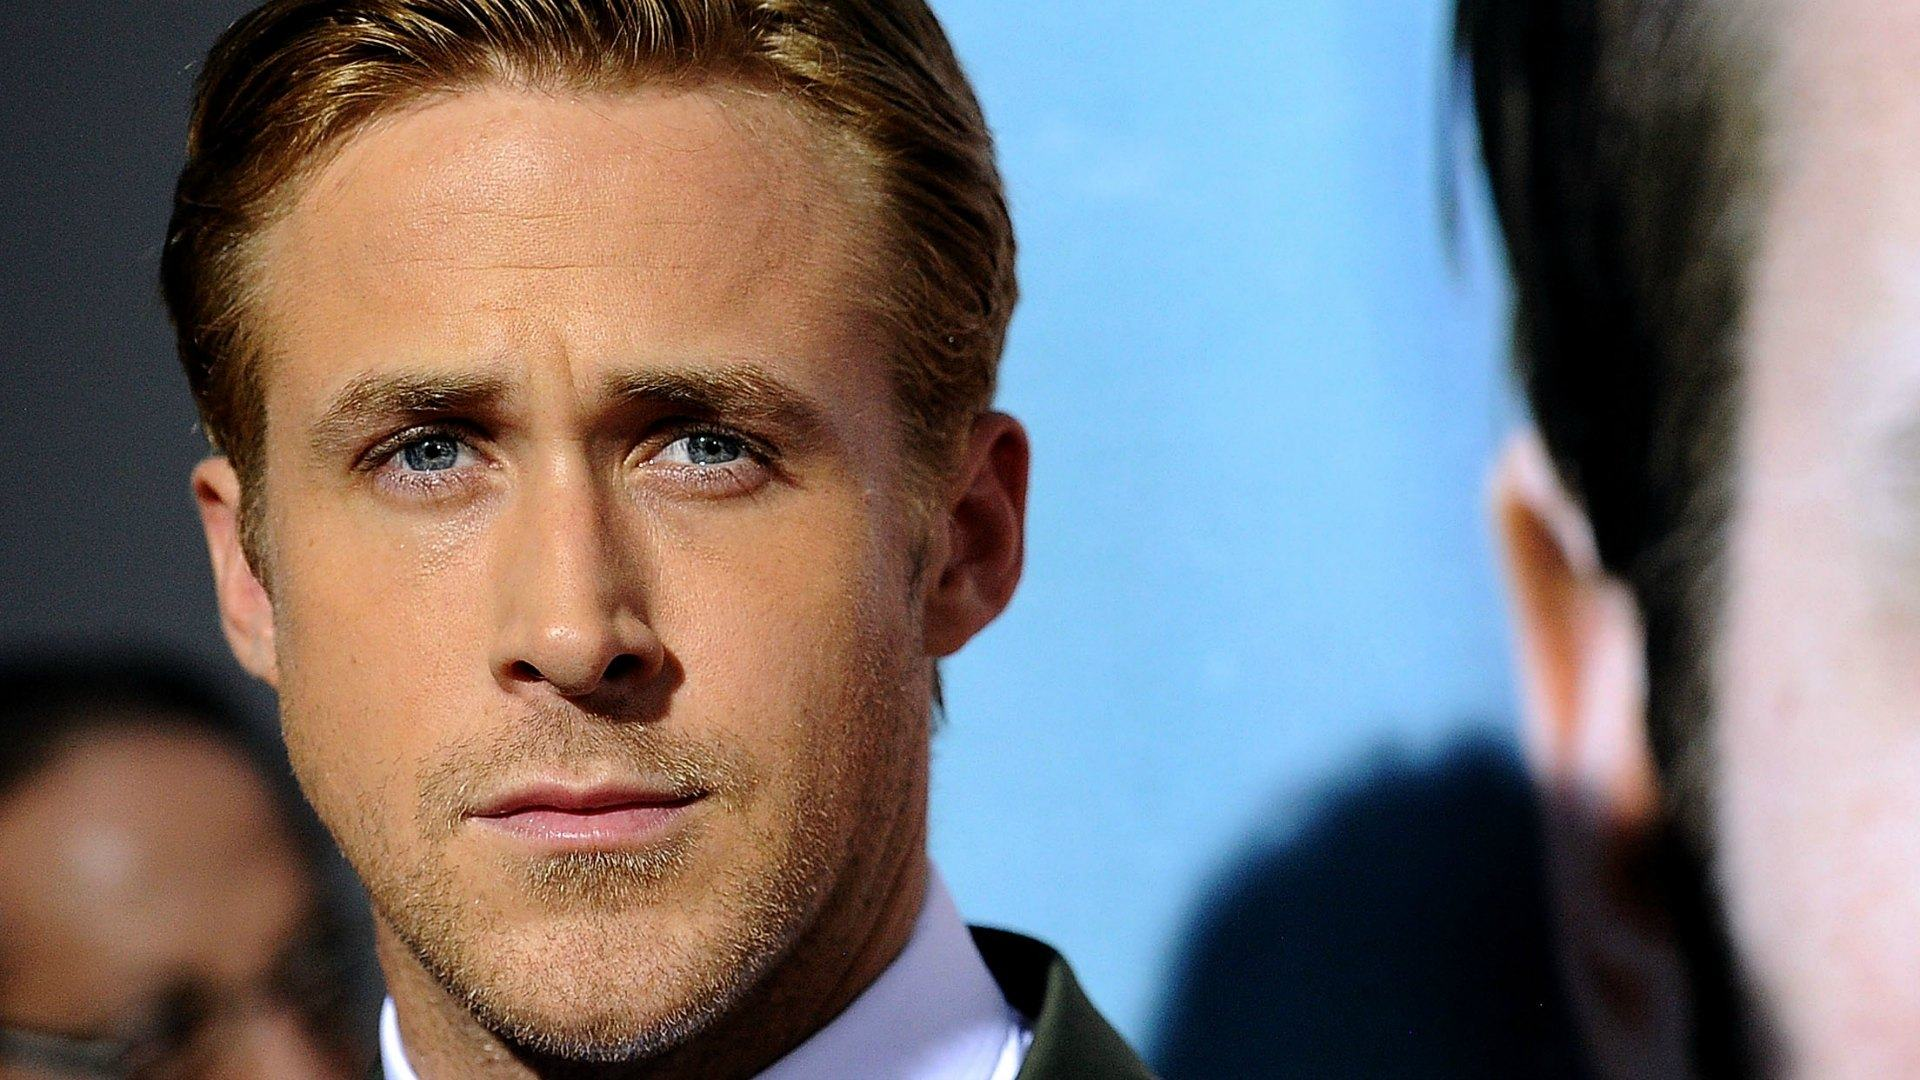 manly look ryan gosling wallpapers hd